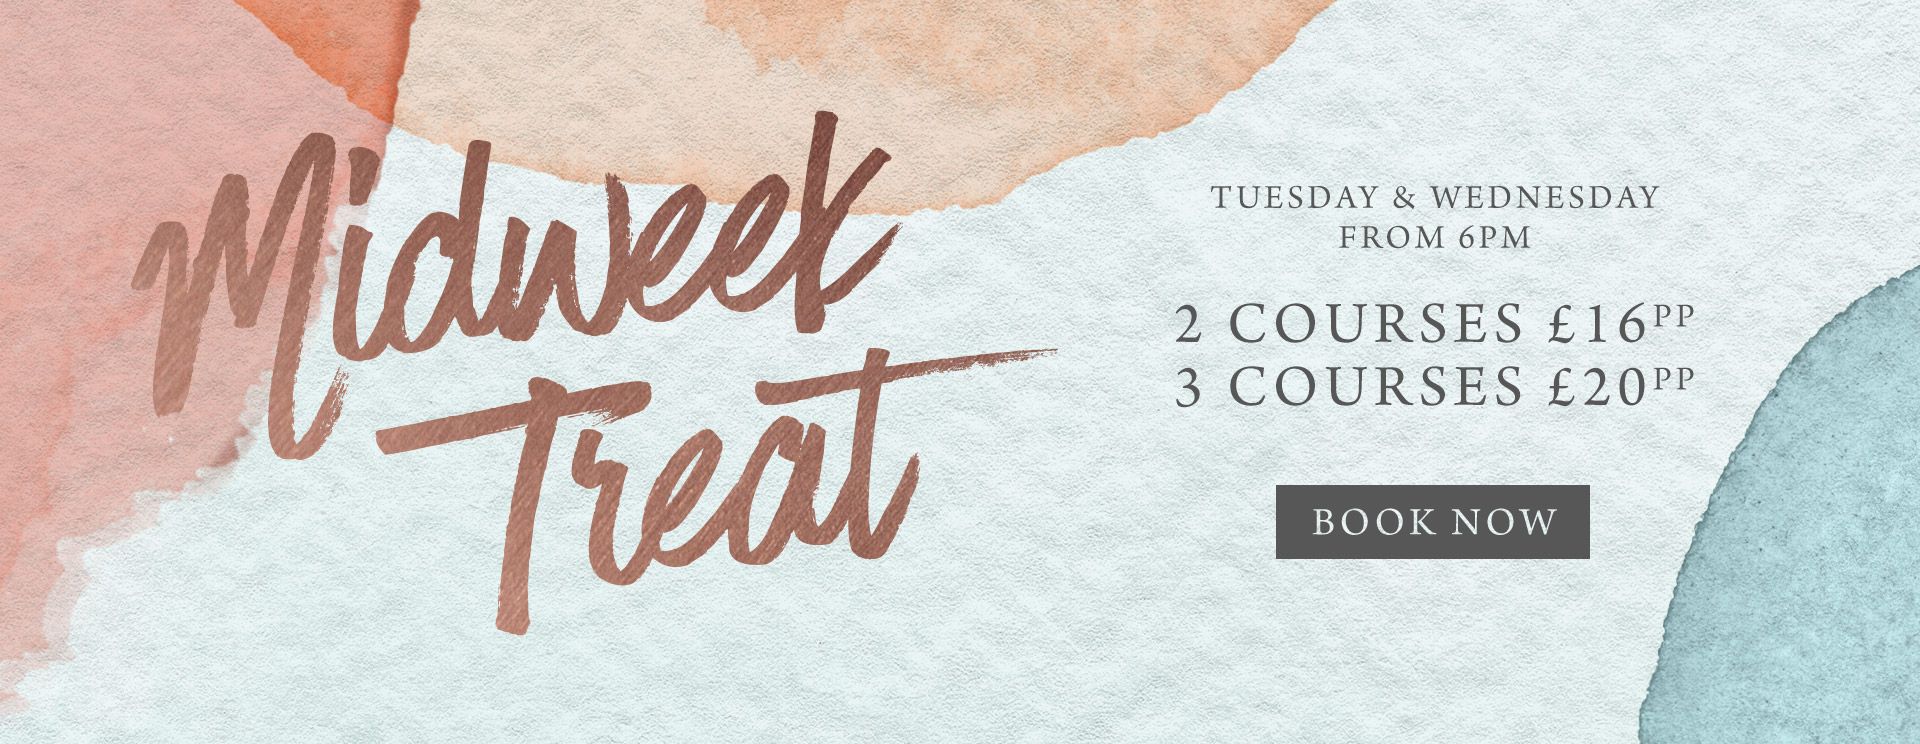 Midweek treat at The Queen & Castle - Book now